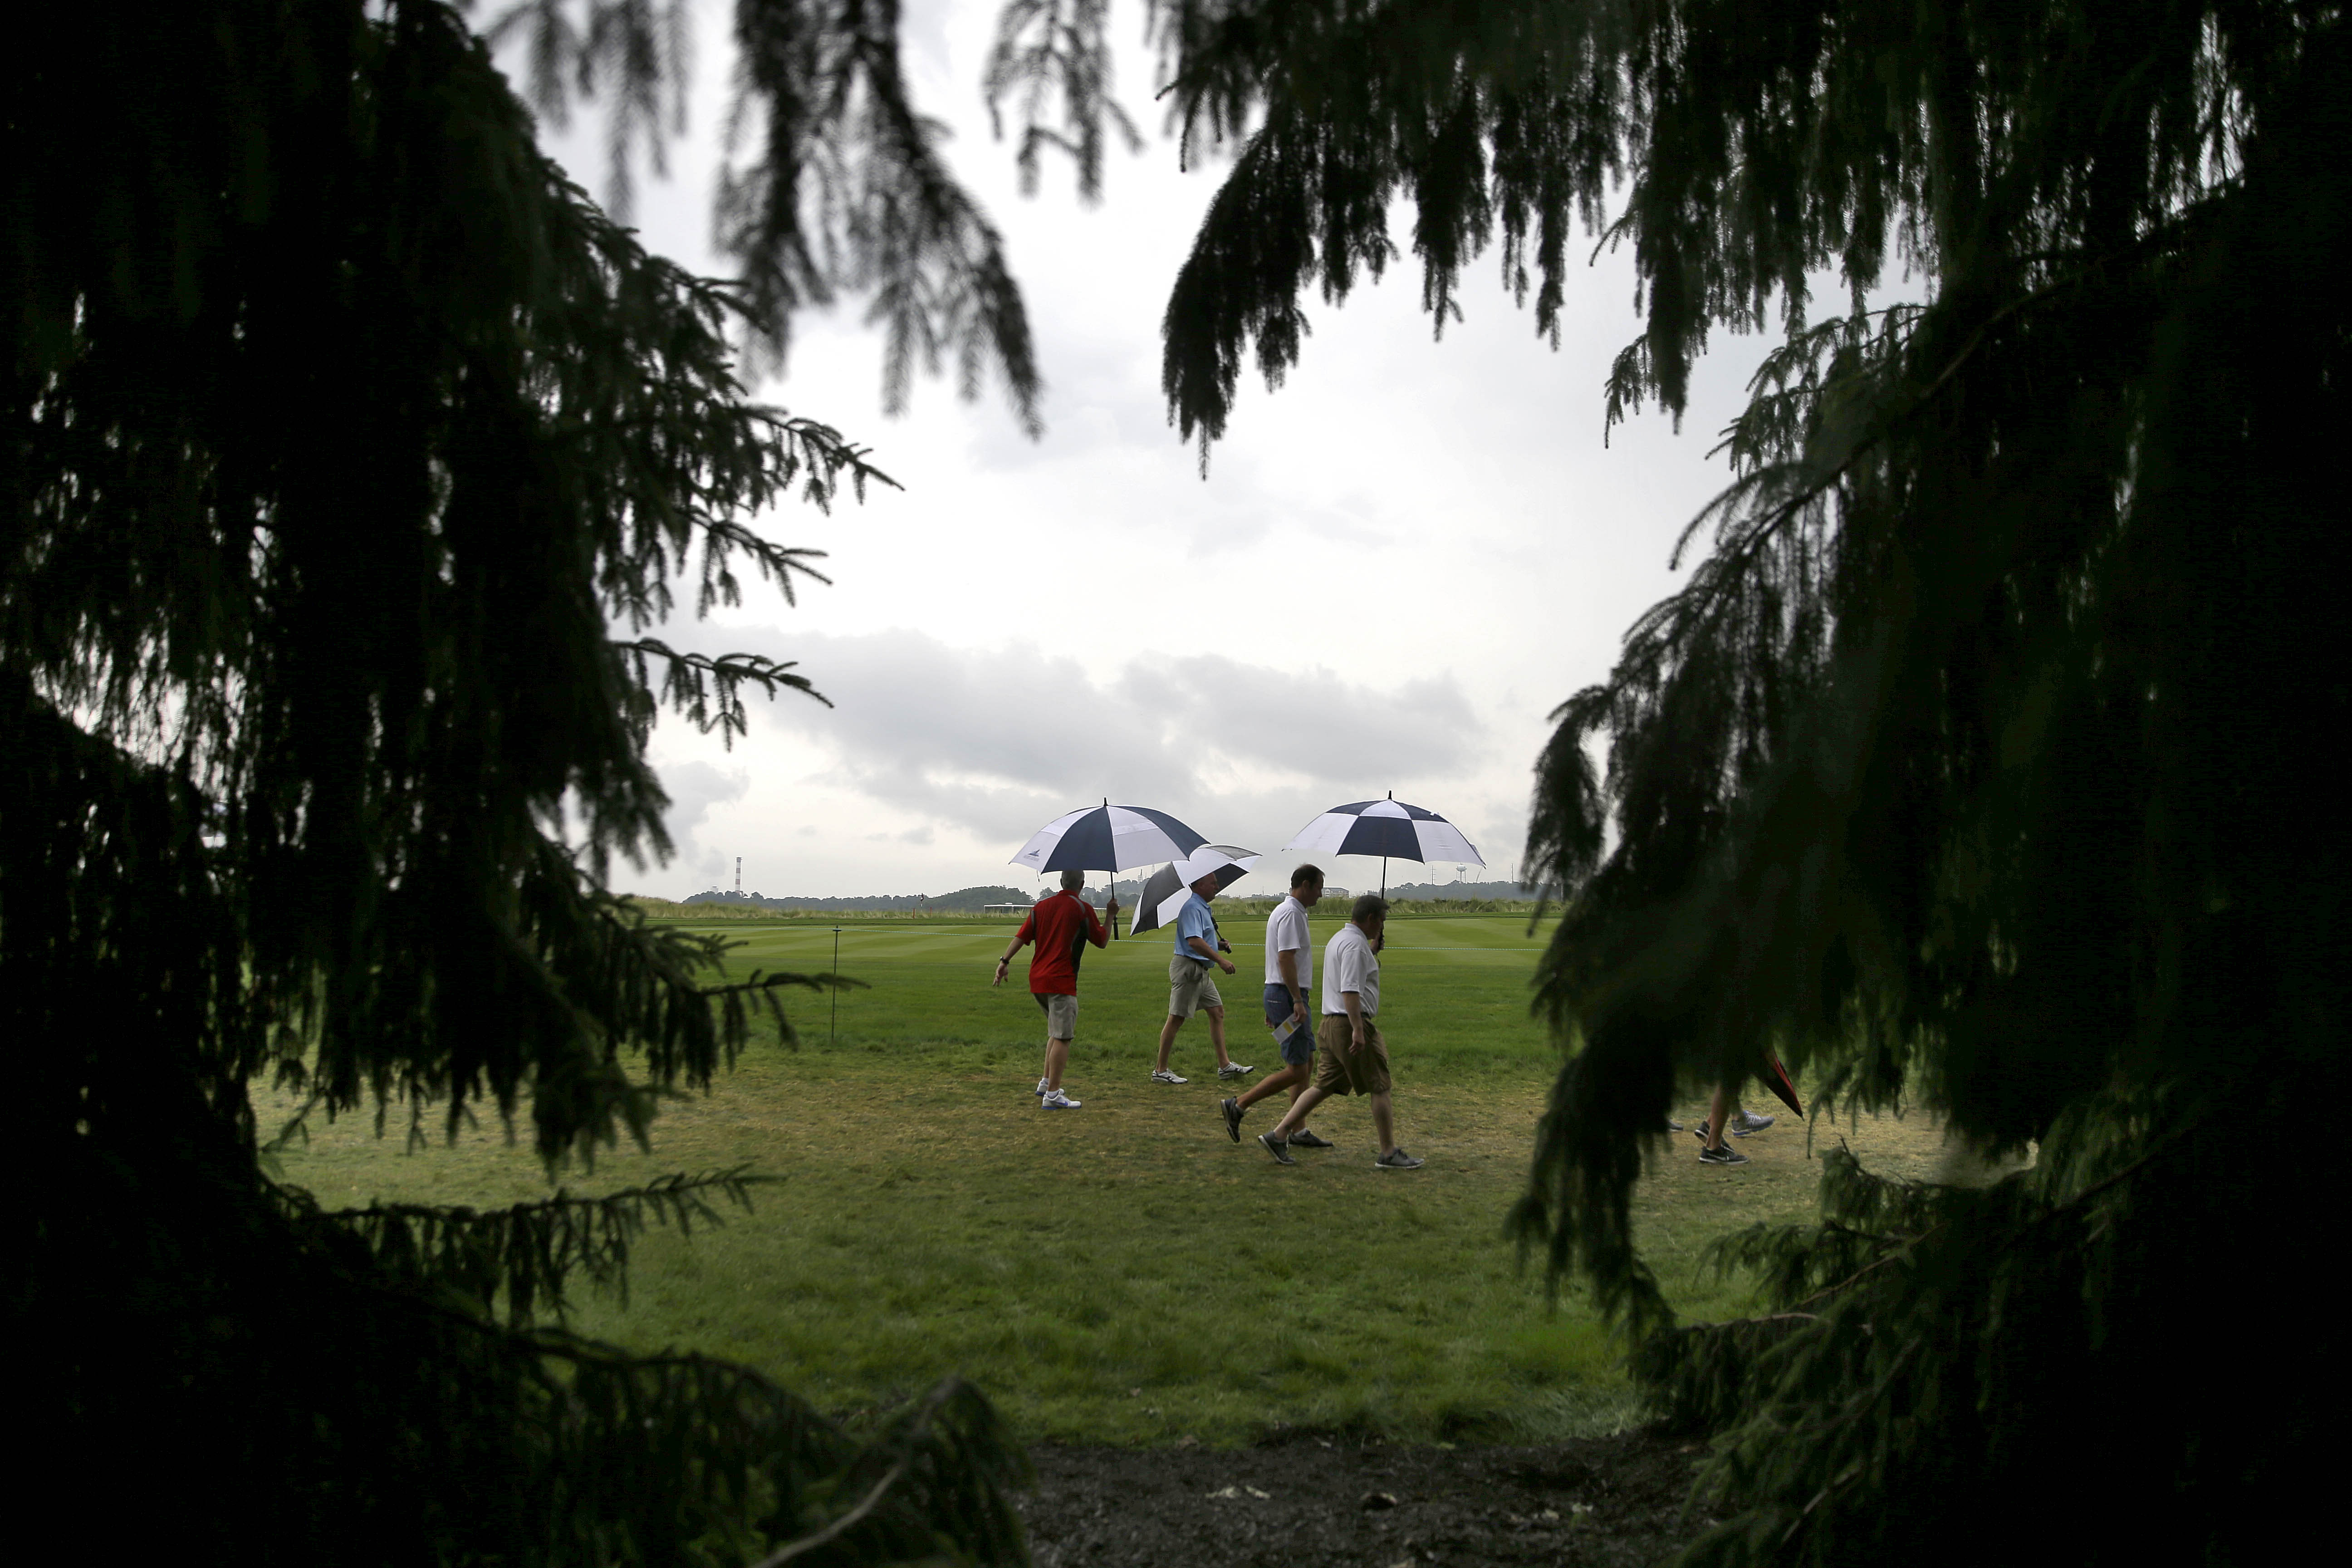 Fans leaves the course after play was suspended during the first round of the U.S. Open golf championship at Oakmont Country Club on Thursday, June 16, 2016, in Oakmont, Pa. (AP Photo/John Minchillo)